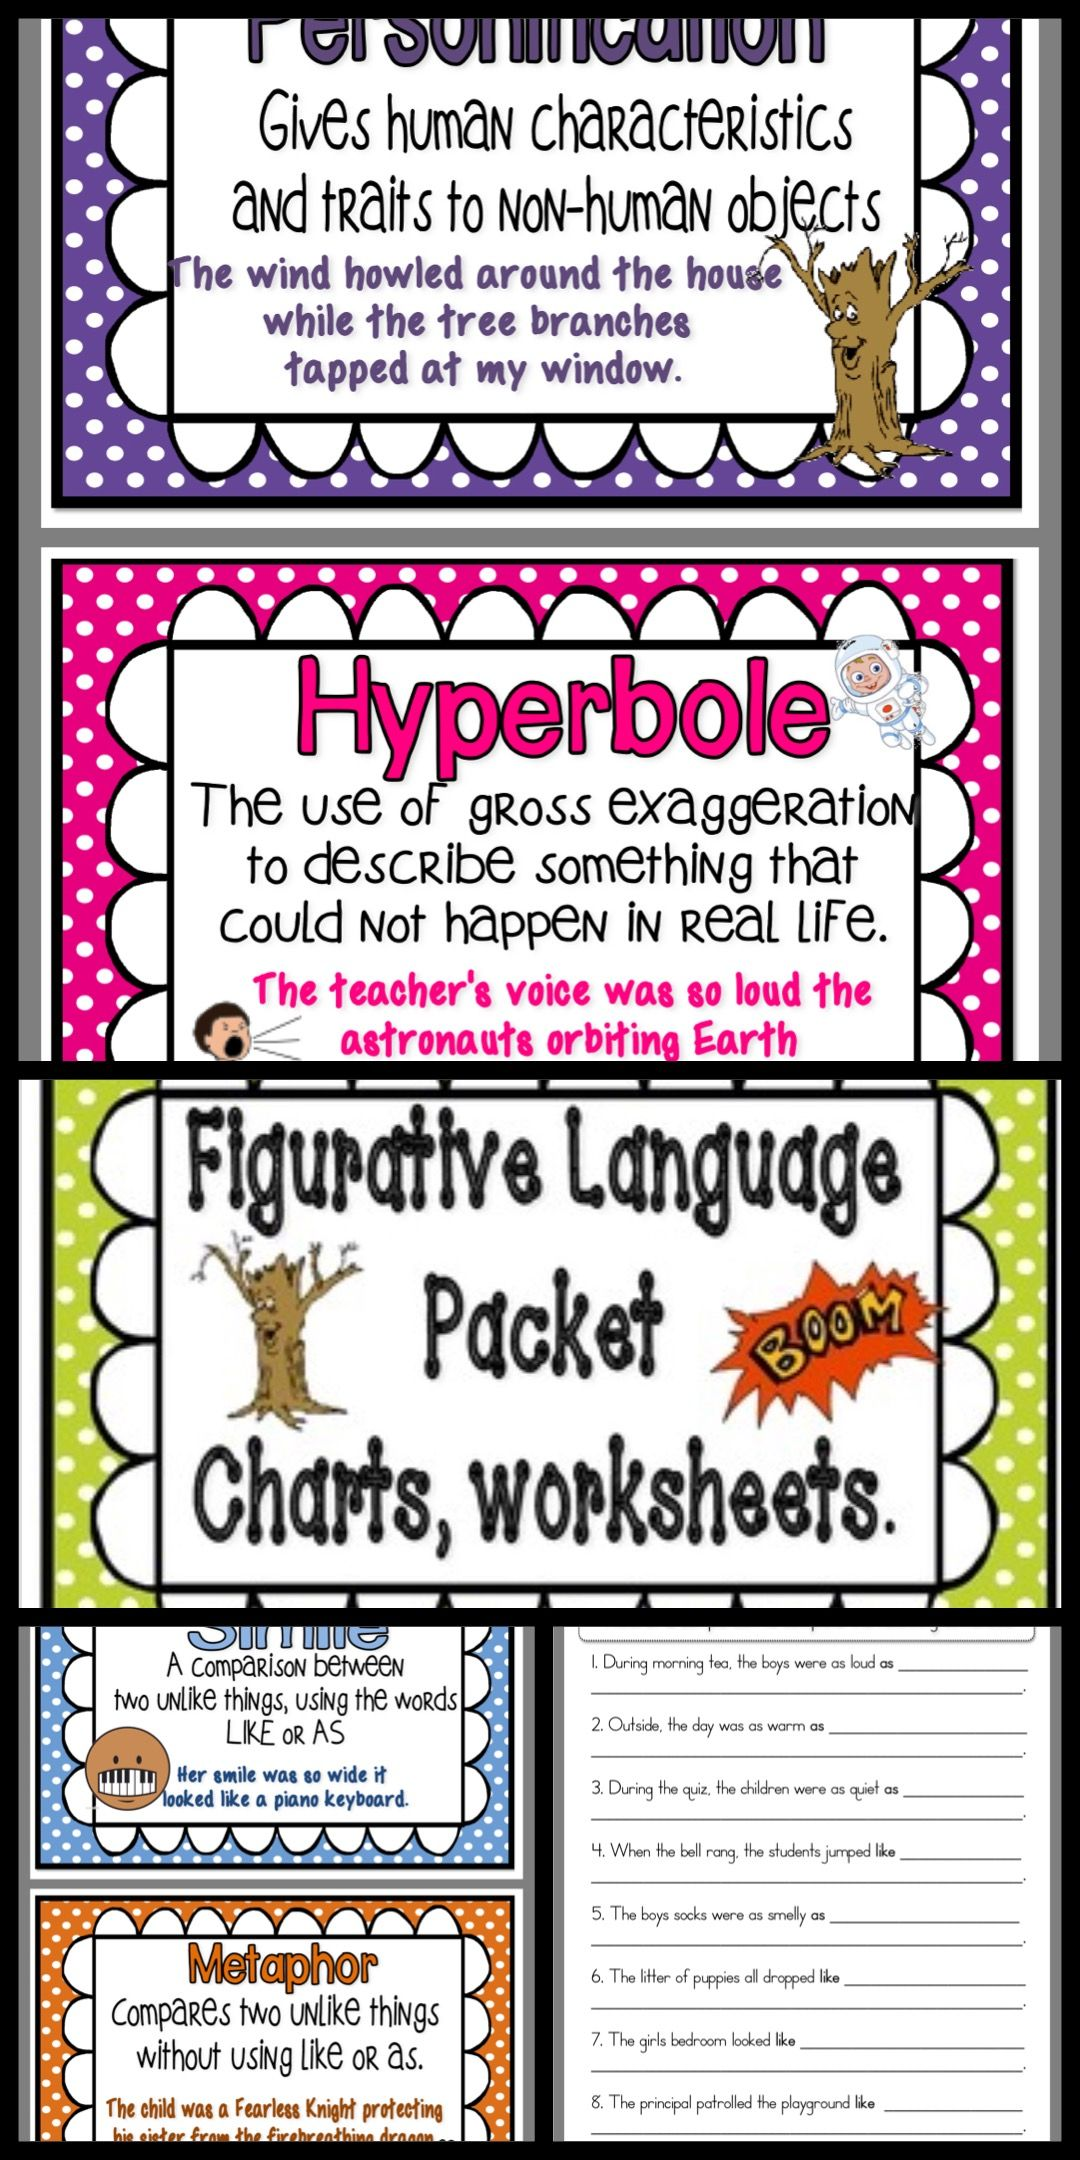 Figurative Language Poetic Devices Posters And Worksheets